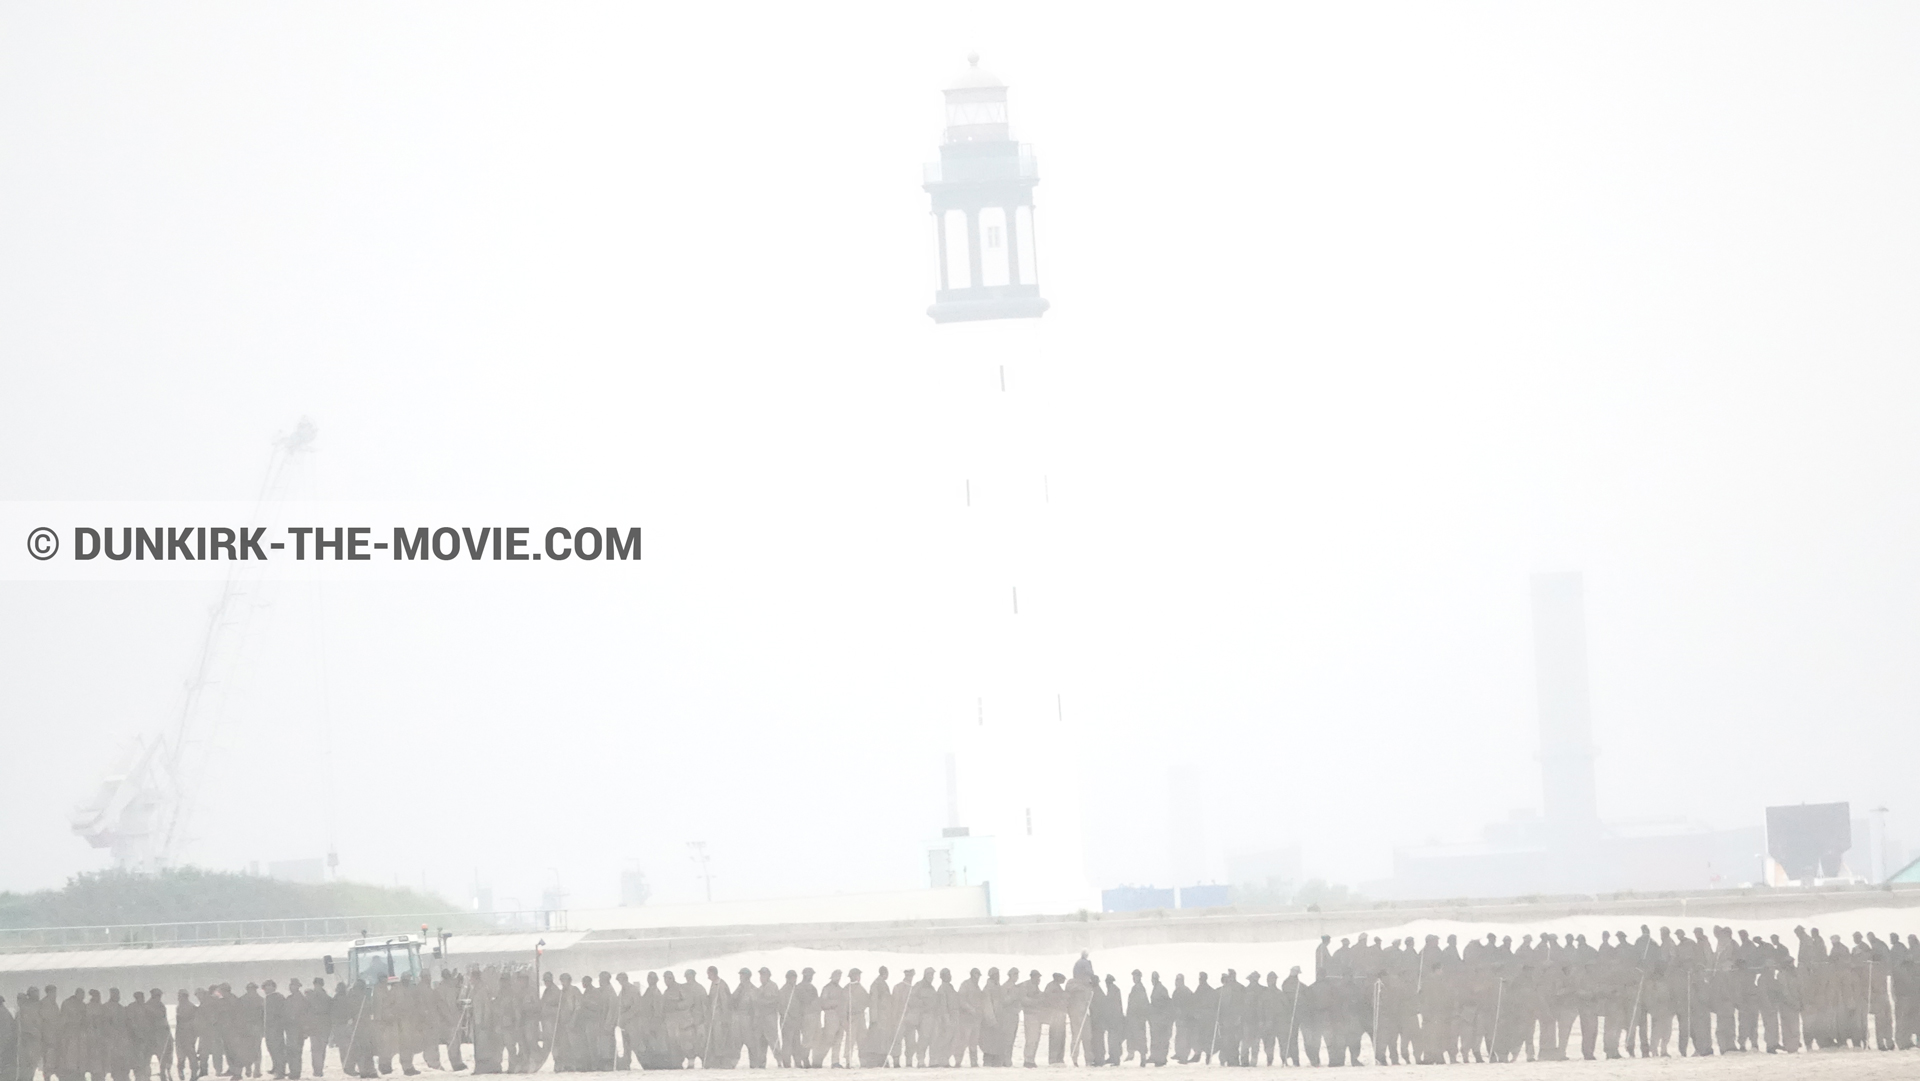 Picture with decor, white smoke, Dunkirk lighthouse,  from behind the scene of the Dunkirk movie by Nolan